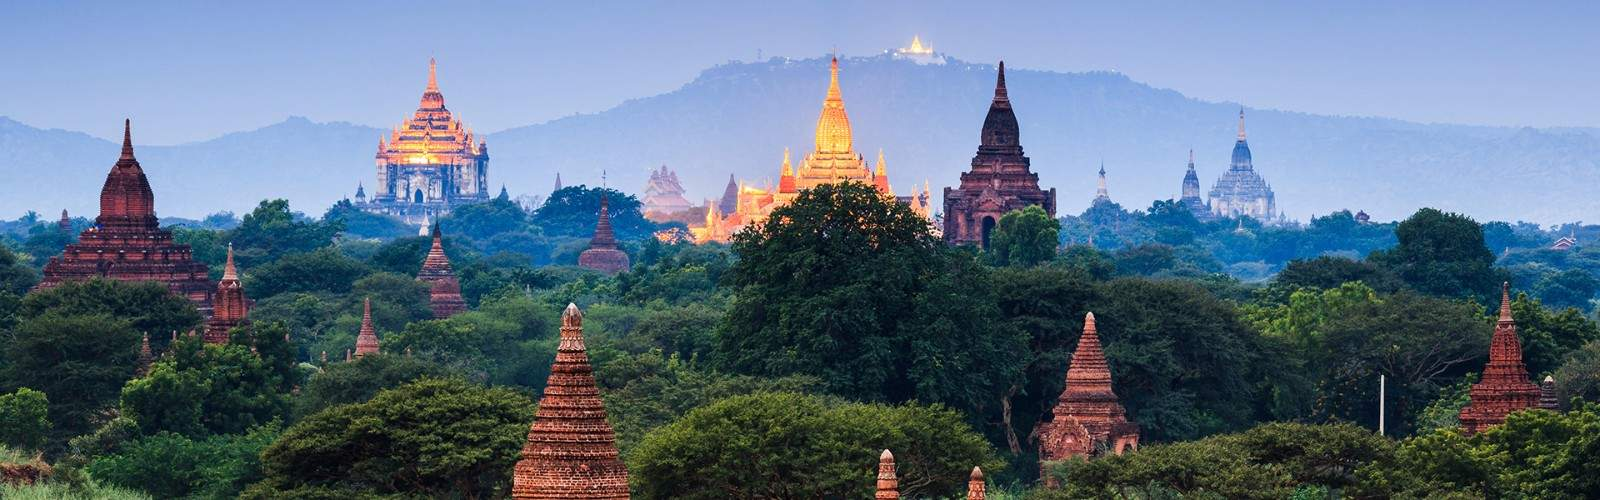 Hidden Treasures of Burma Tour | Wendy Wu Tours